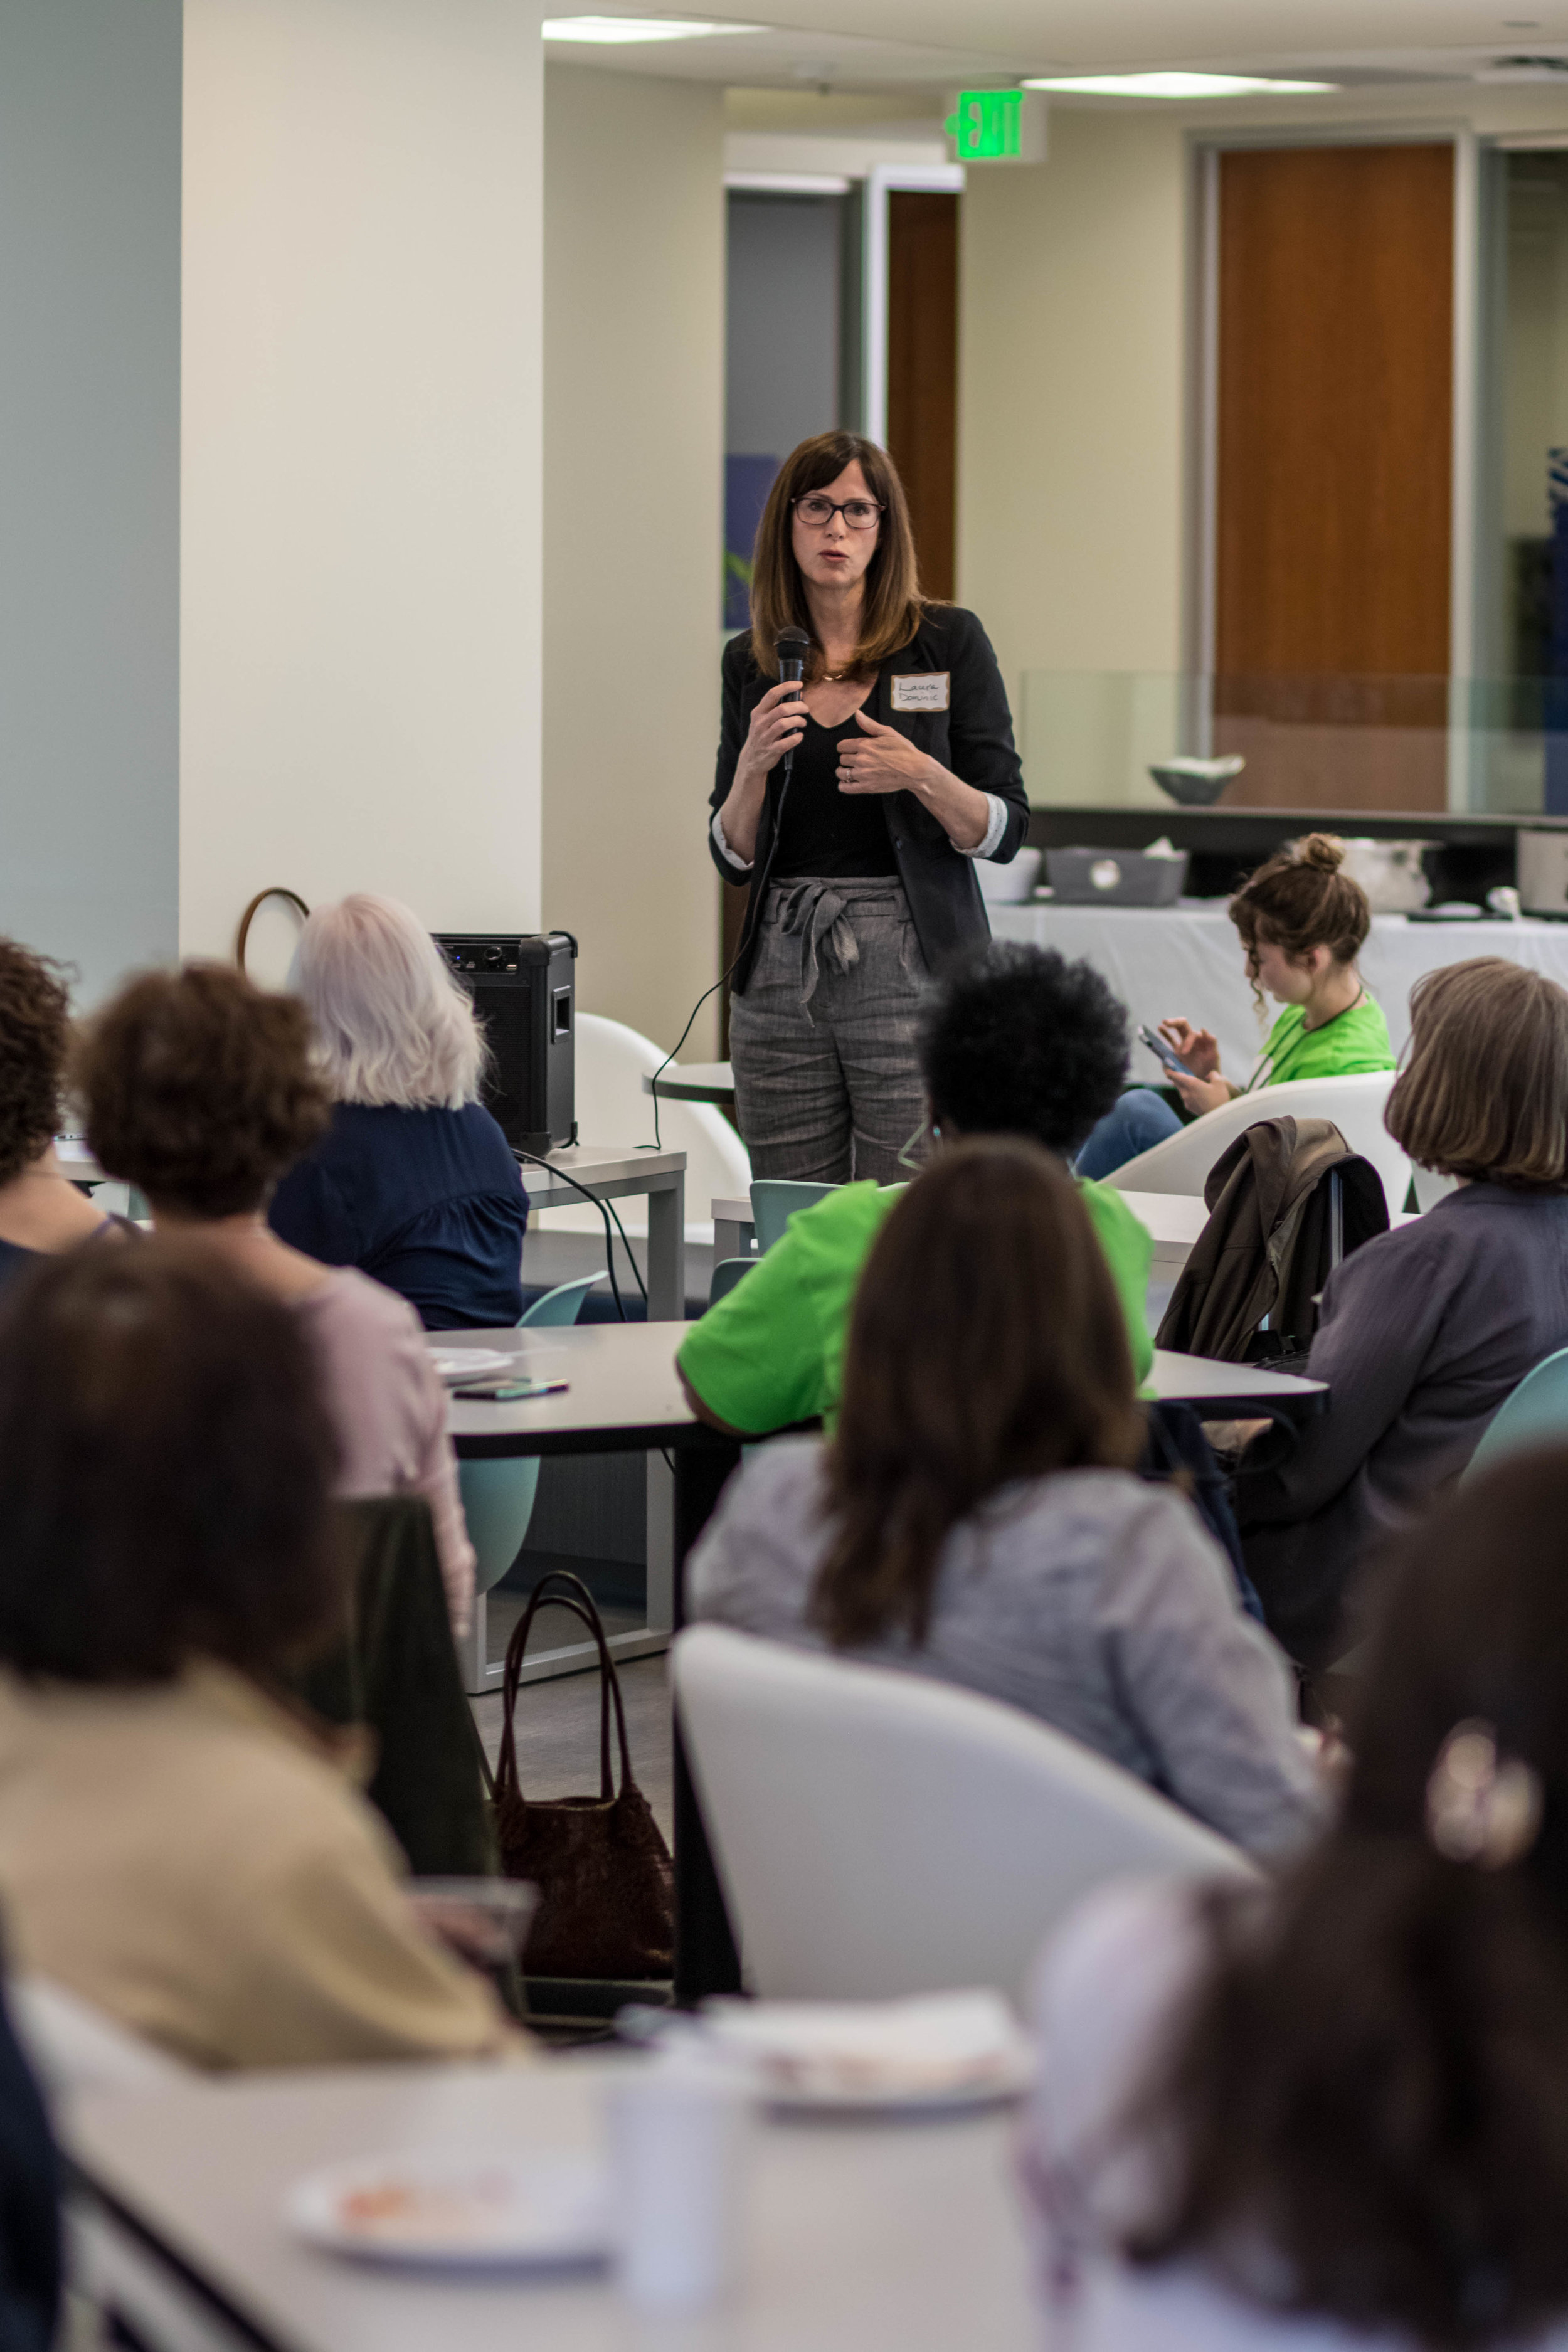 PDXWIT Experienced Women in Tech @ Corvel, 4/30/19 - Laura Dominic, Senior Consultant at Tsongas Litigation Consulting, speaks